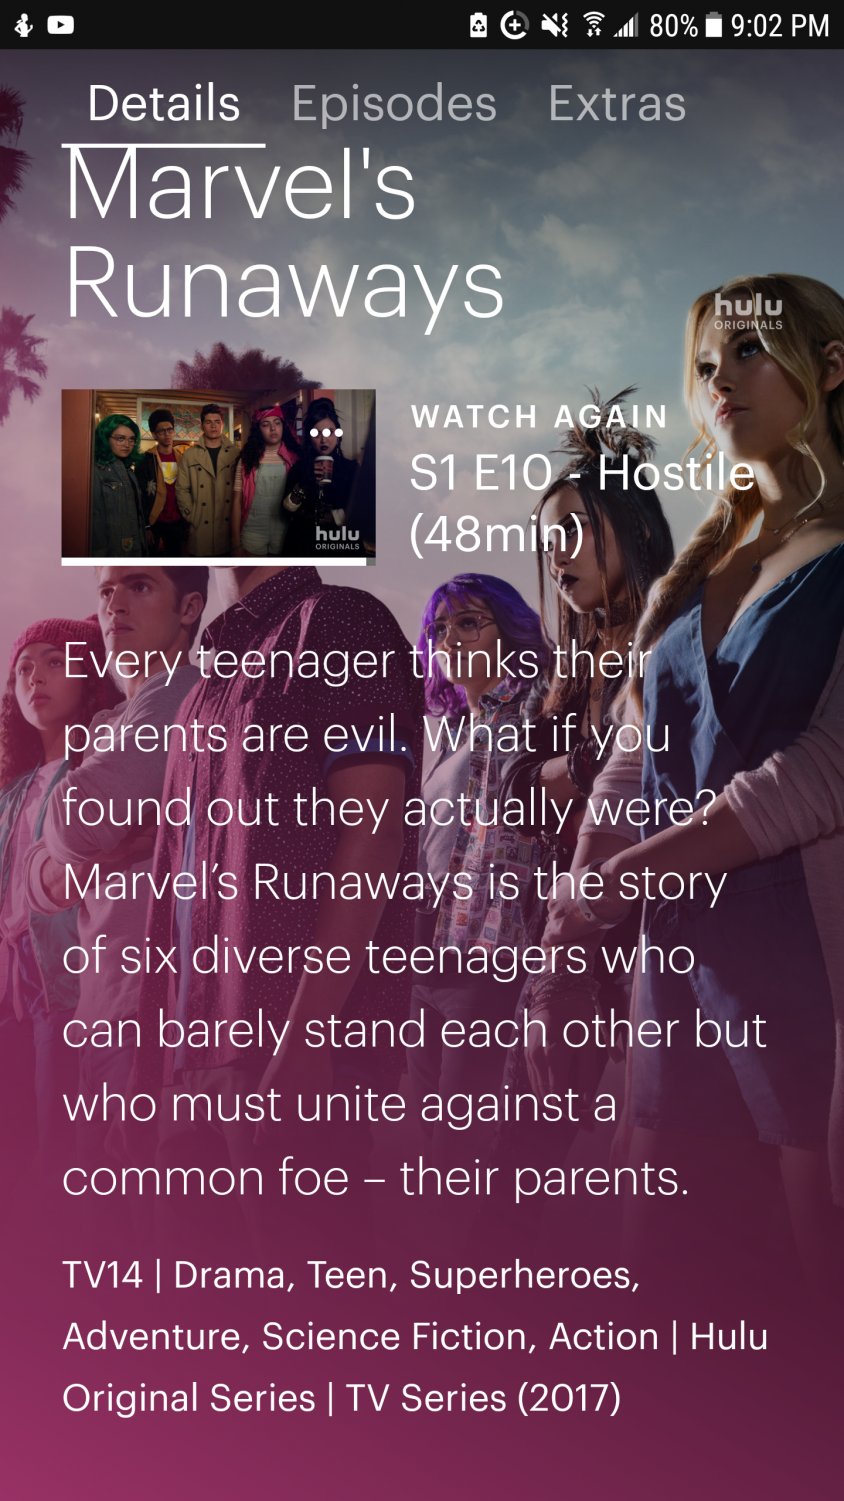 The Hulu page for